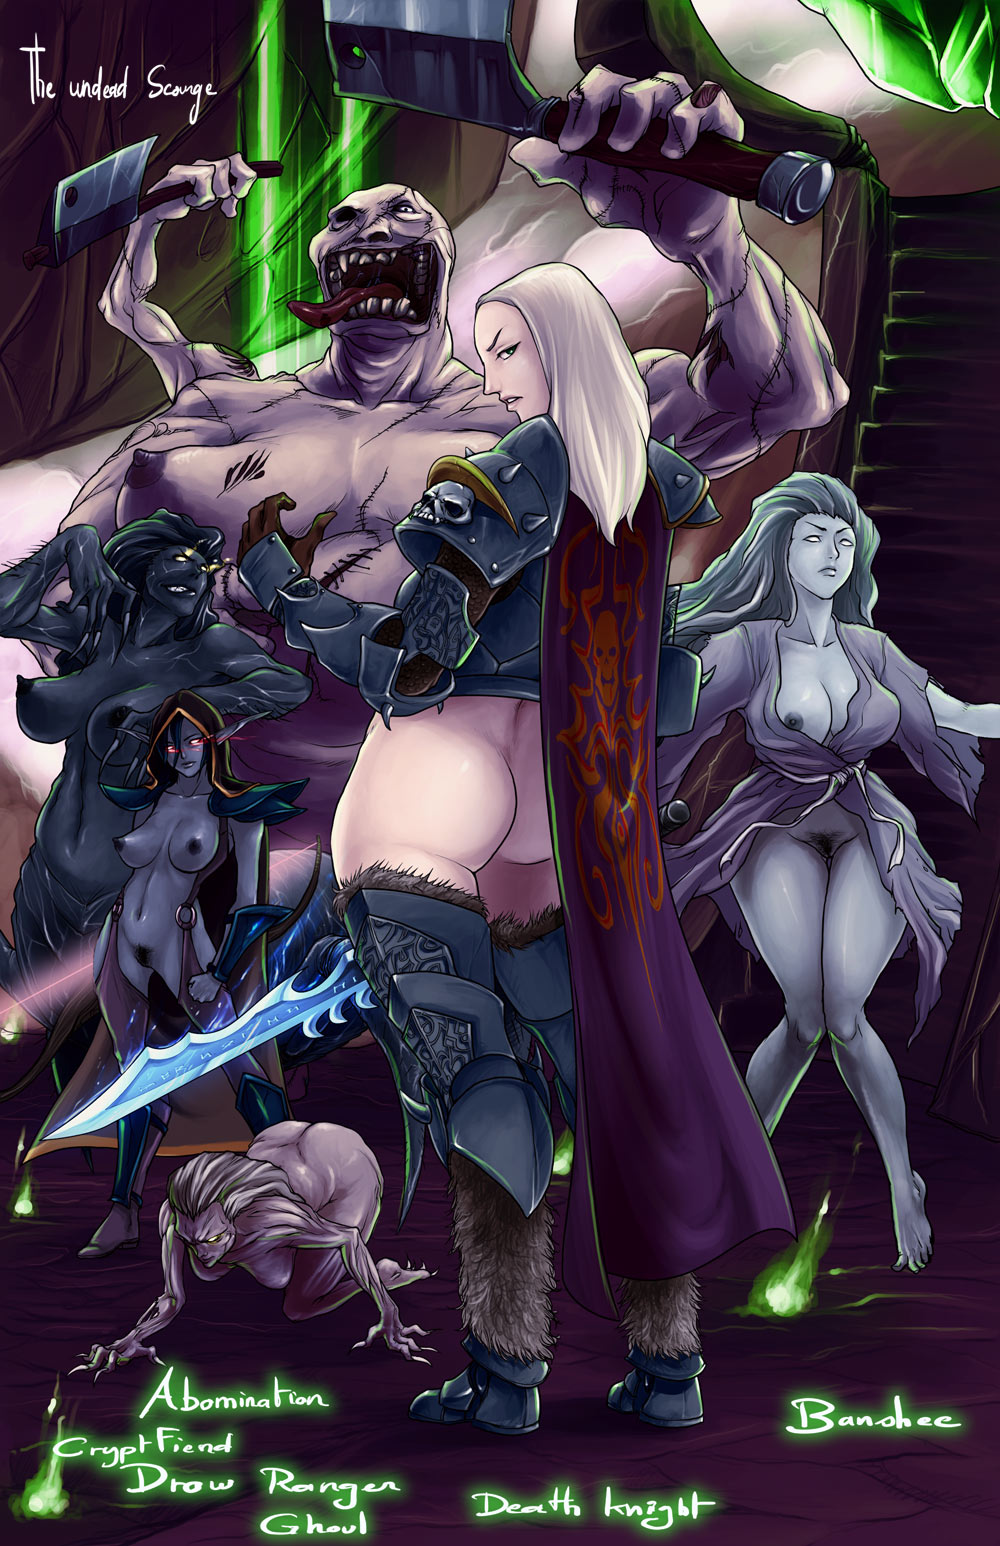 Death knight sex video porn thumbs